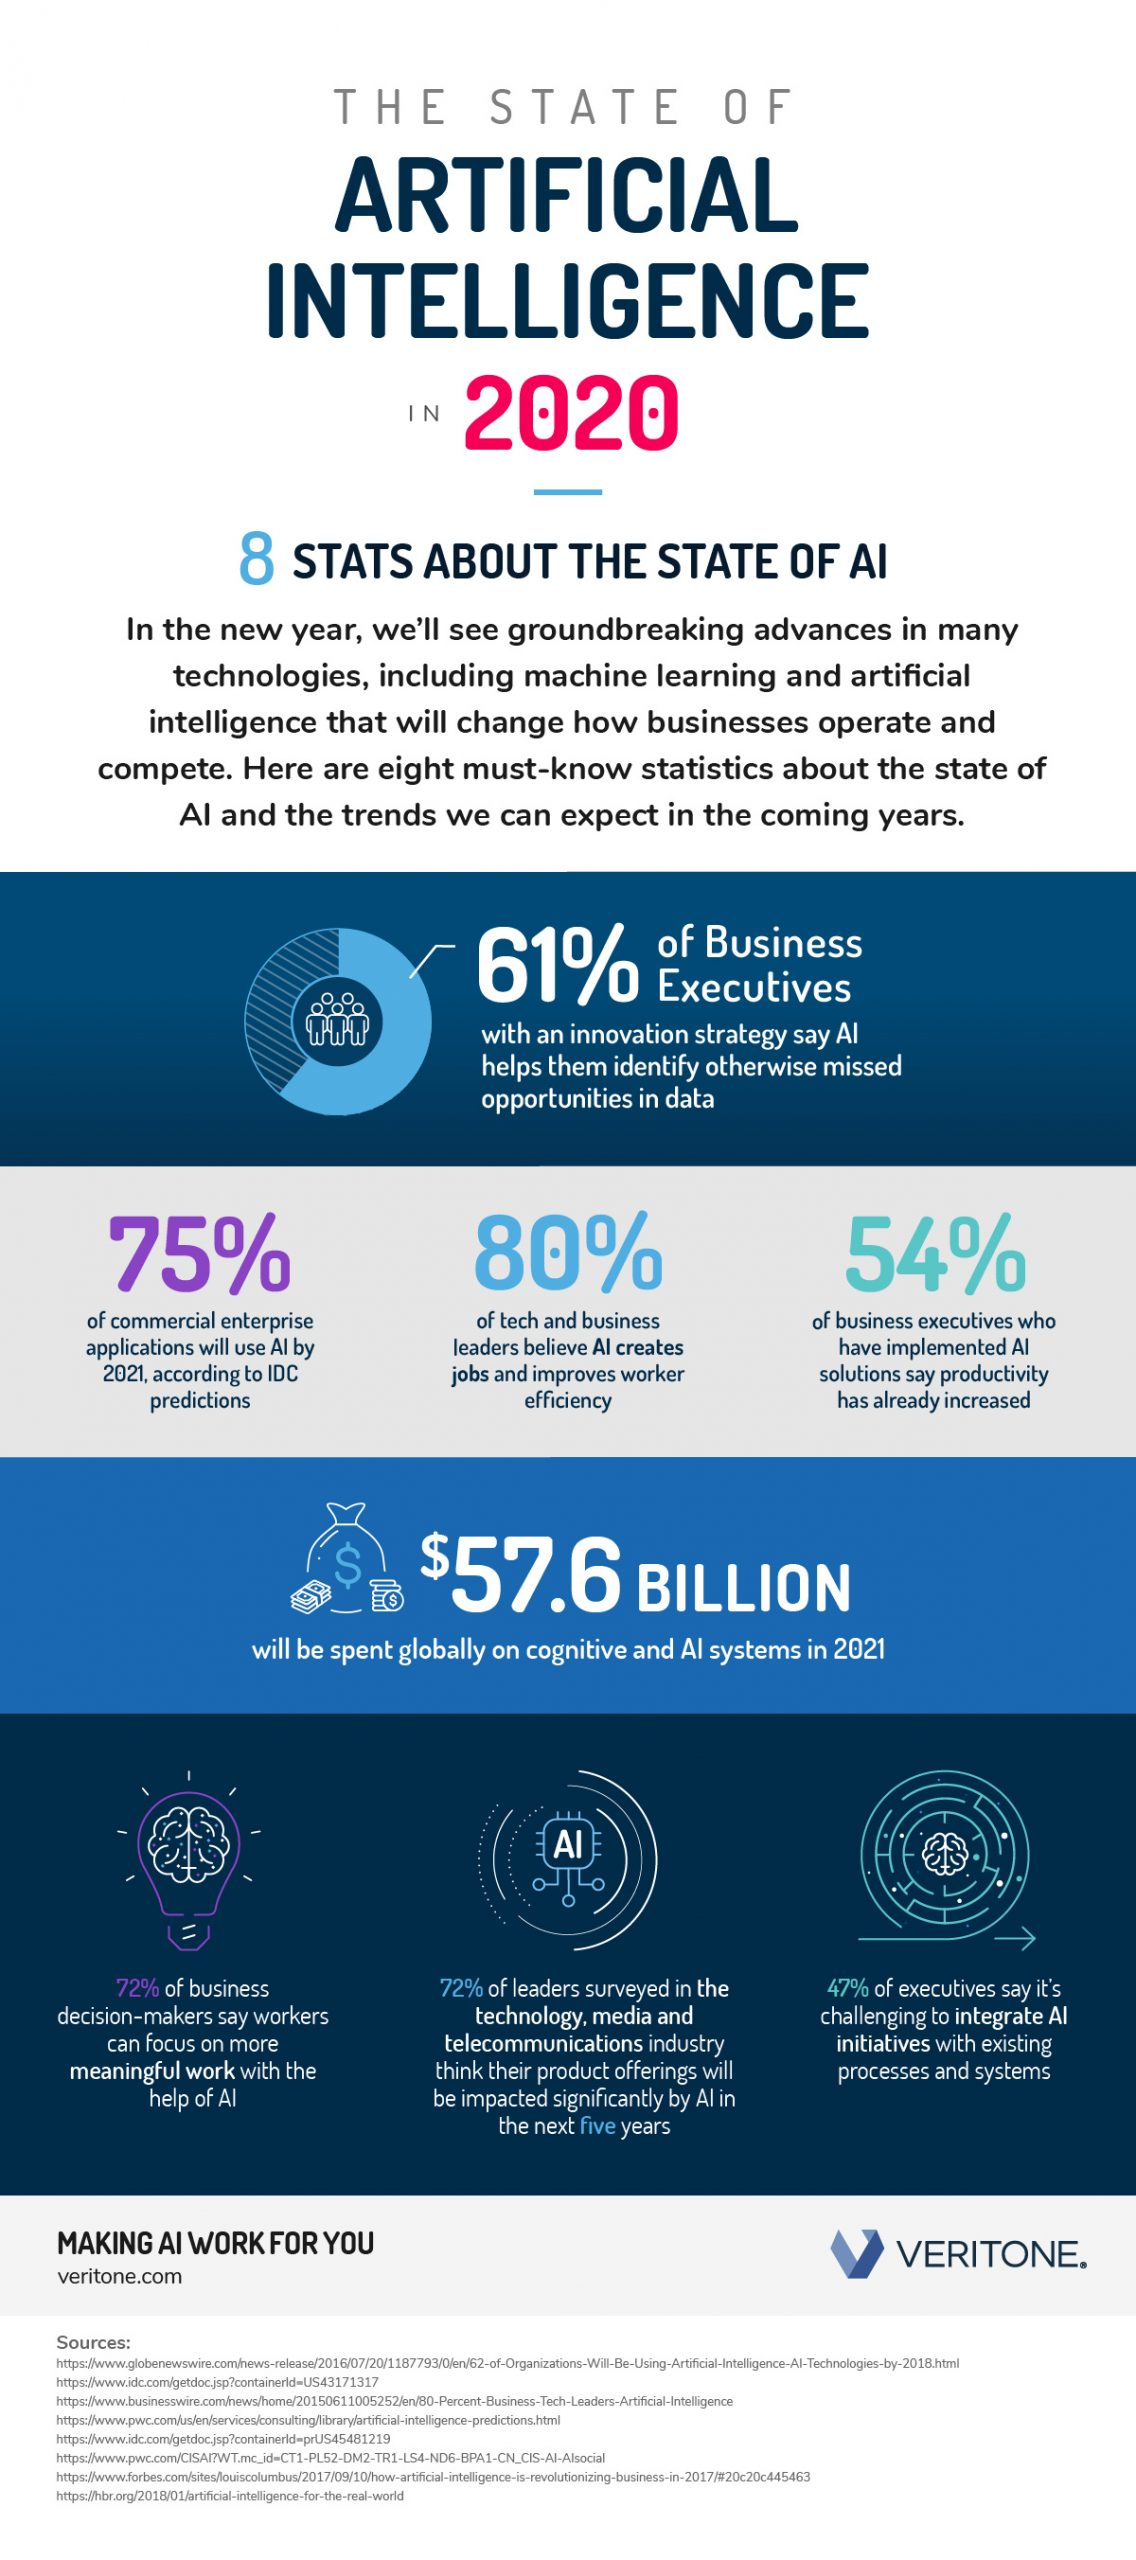 The State of Artificial Intelligence in 2020: AI by the numbers - Veritone